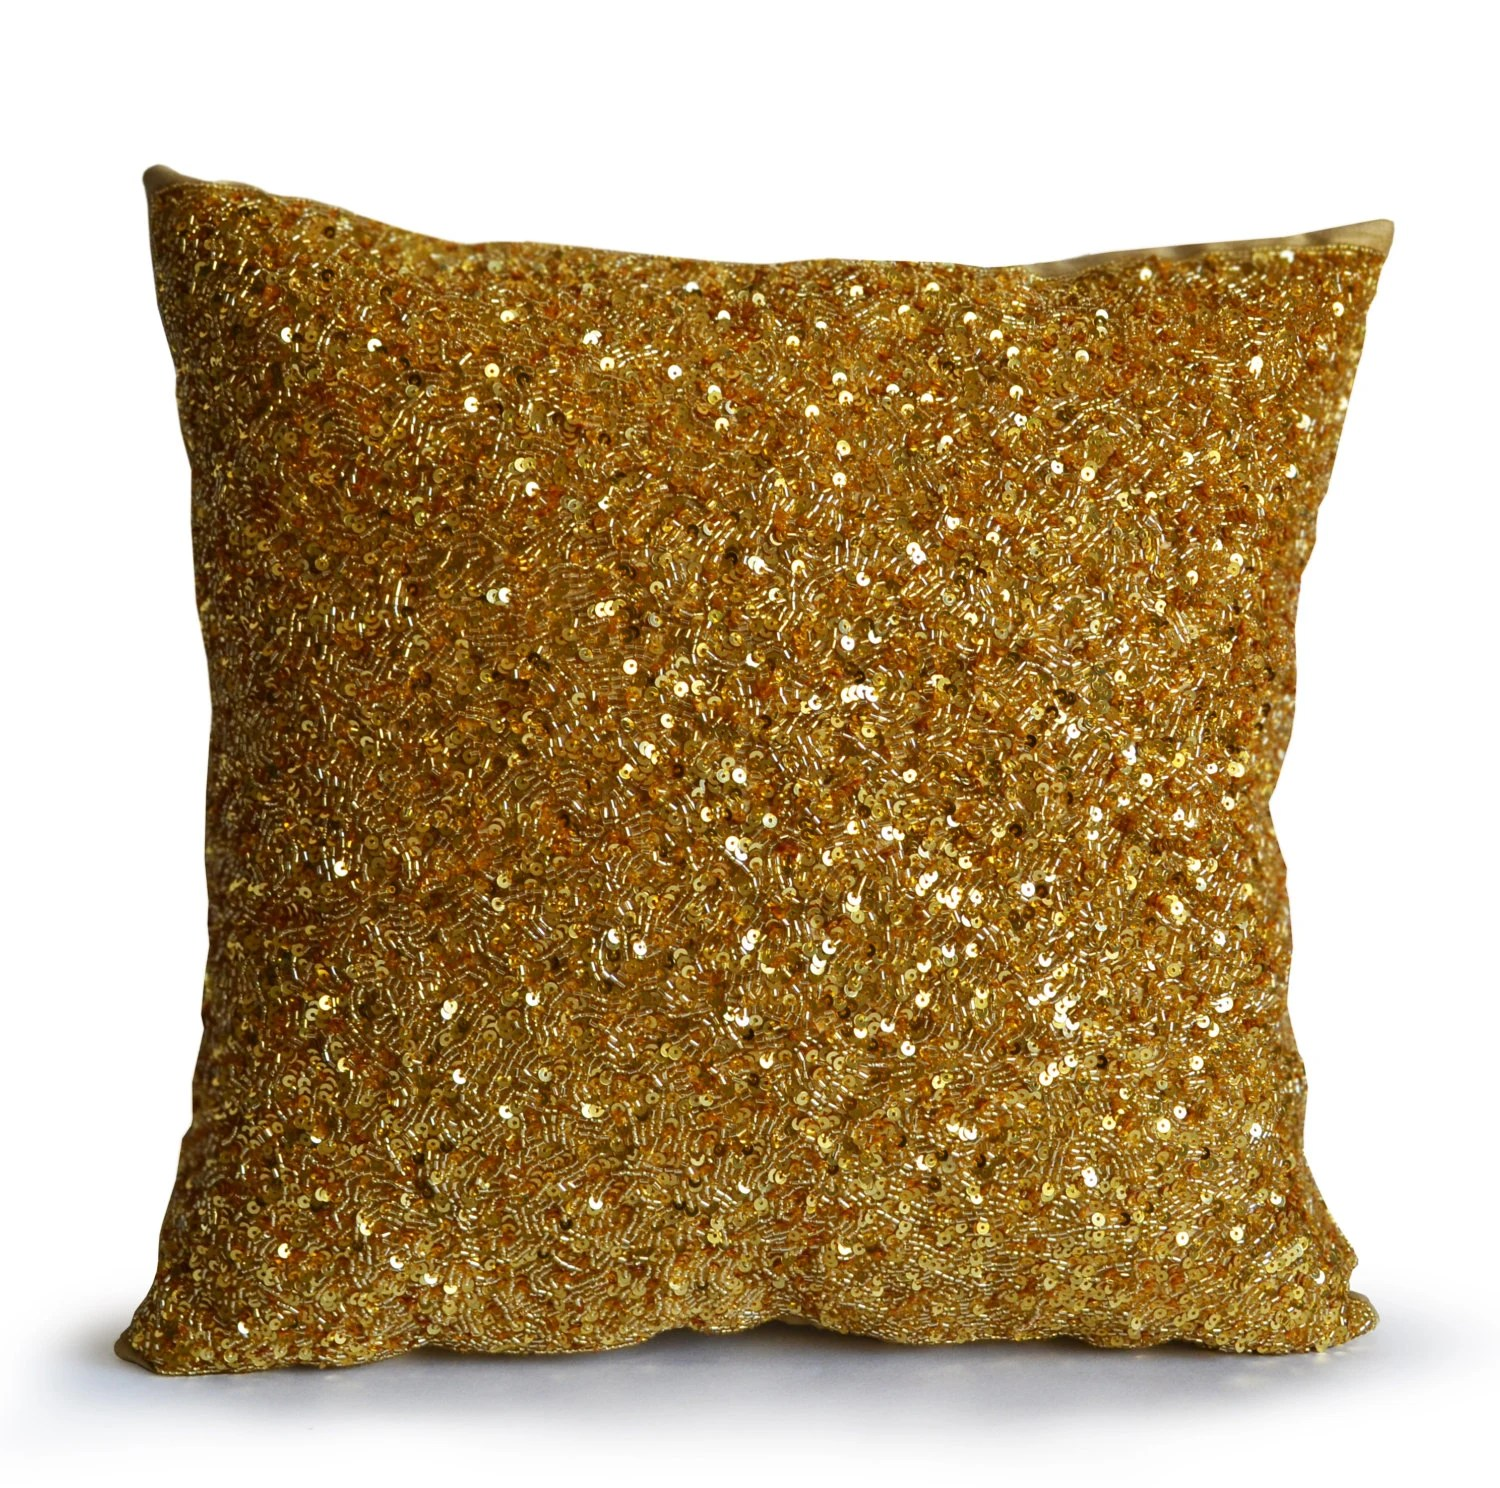 gold sofa throw pillows air mattress hide a bed for rv pillow cover holiday decor chic